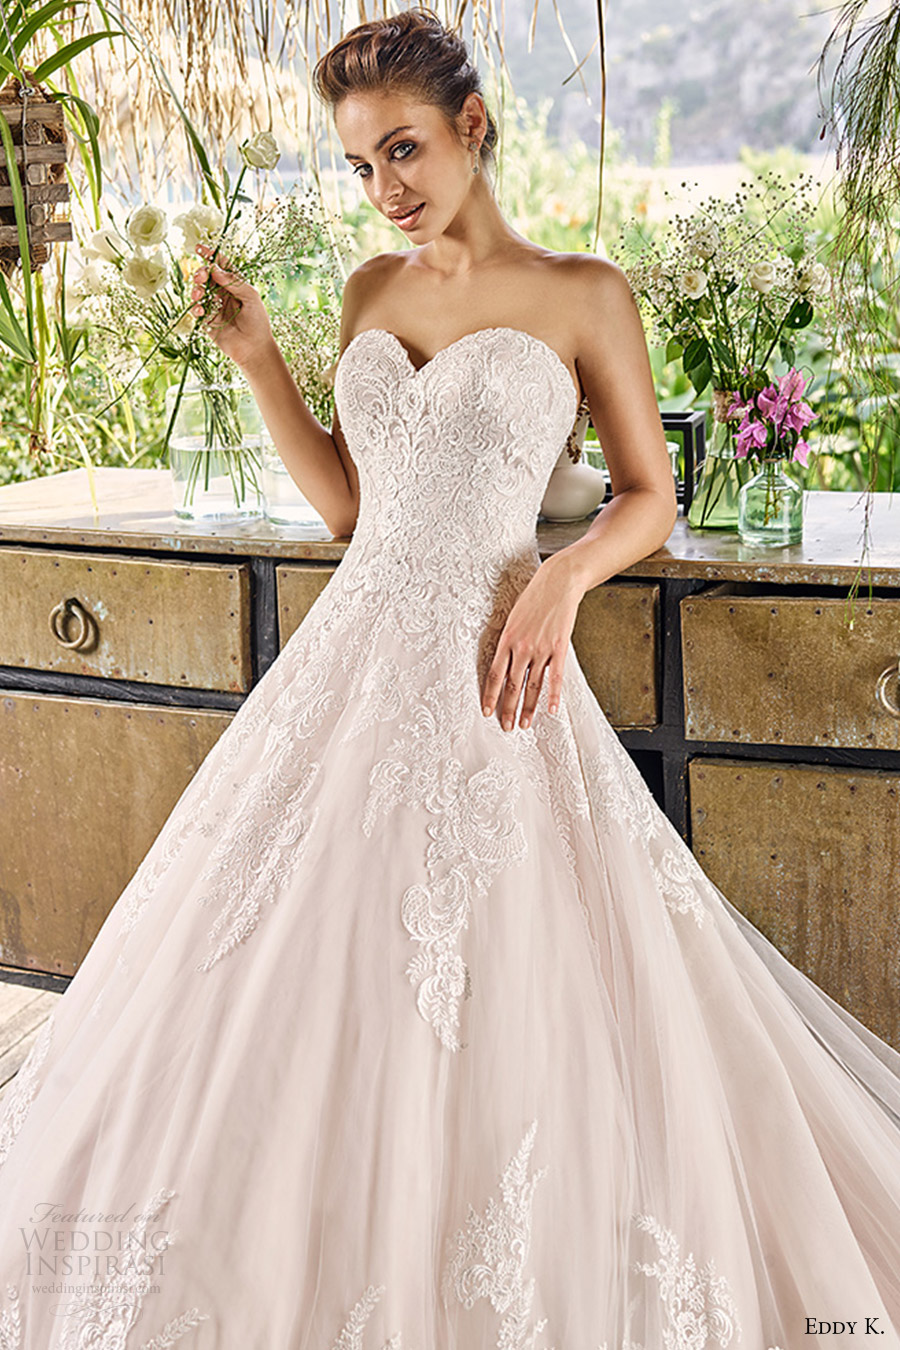 eddy k bridal 2017 strapless sweetheart aline ball gown lace wedding dress (napa) fv romantic elegant